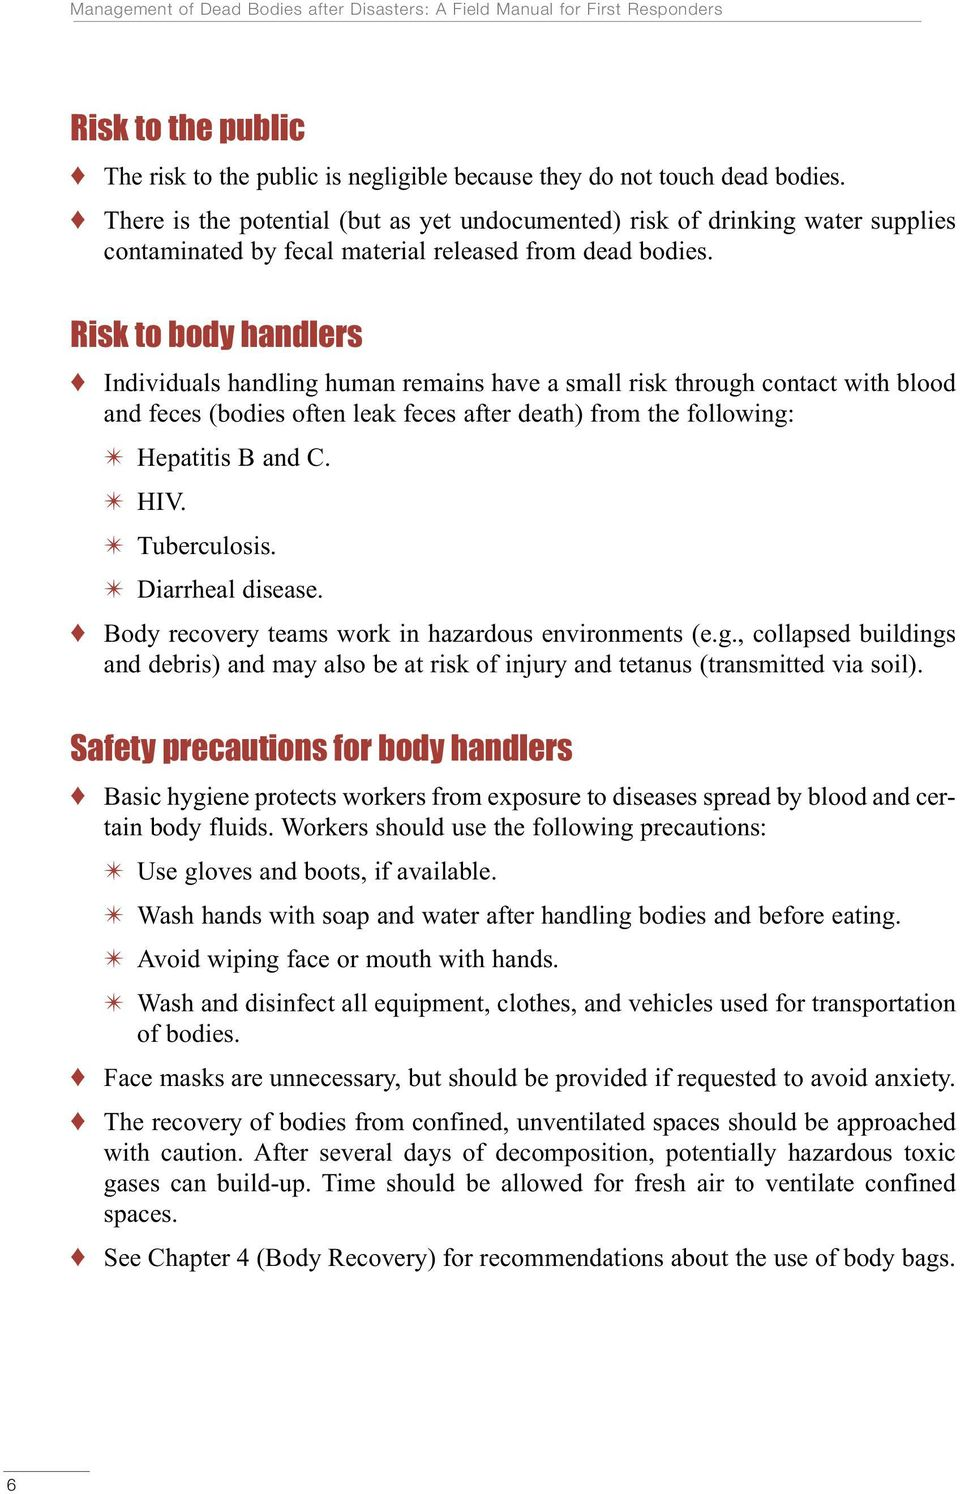 Risk to body handlers Individuals handling human remains have a small risk through contact with blood and feces (bodies often leak feces after death) from the following: Hepatitis B and C. HIV.